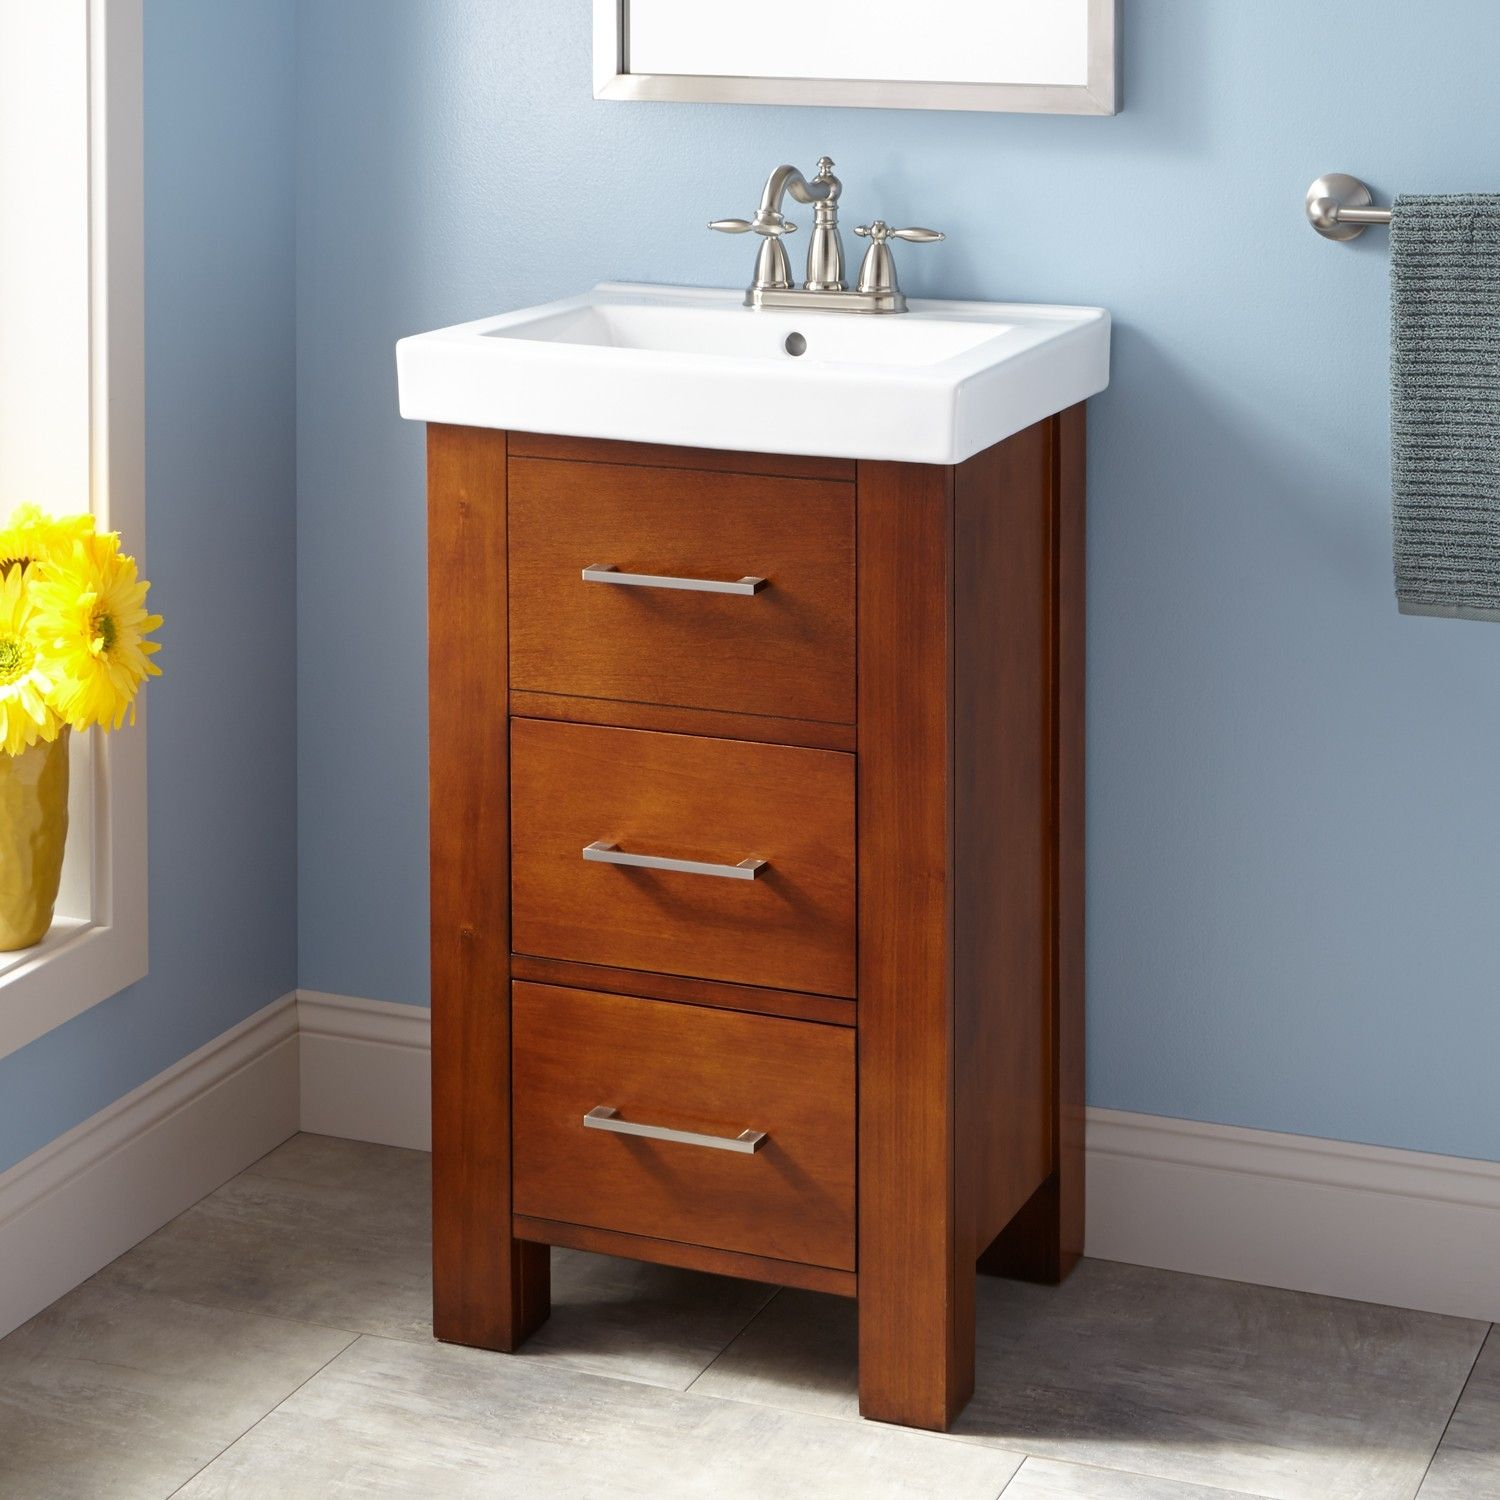 20 Inch Bathroom Vanity Ikea When It Comes Time For You To Select Bathroom Cabinets You Ve A Gr 20 Inch Bathroom Vanity Bathroom Vanity Sizes Bathroom Vanity